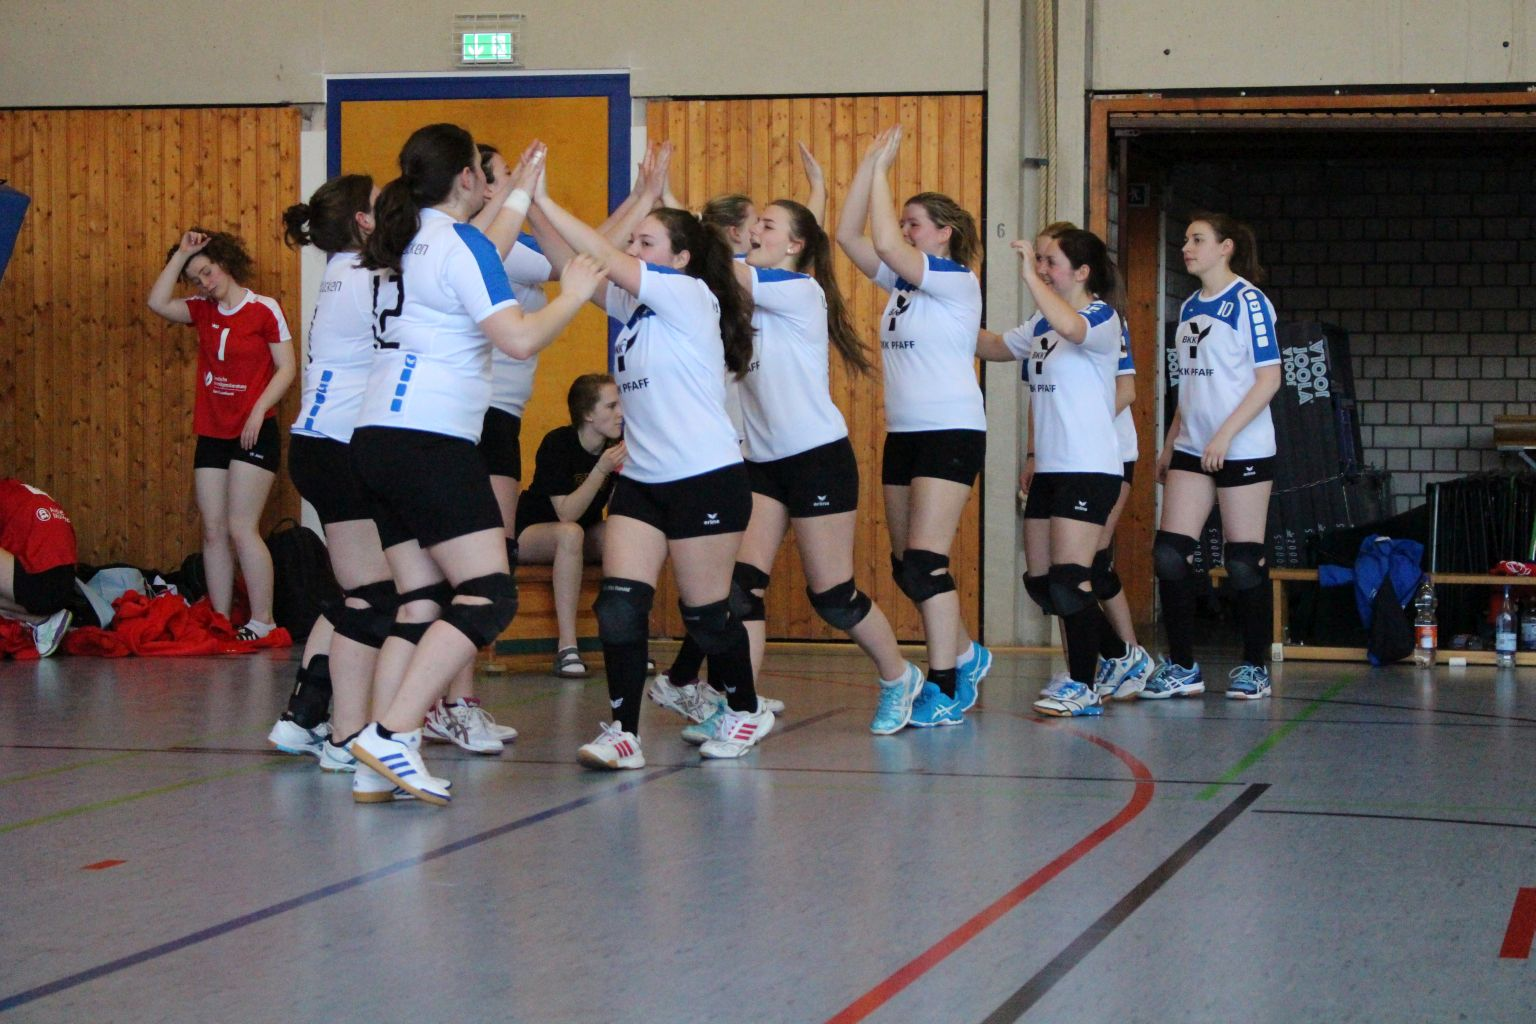 170325_Volleyball_IMG_4163